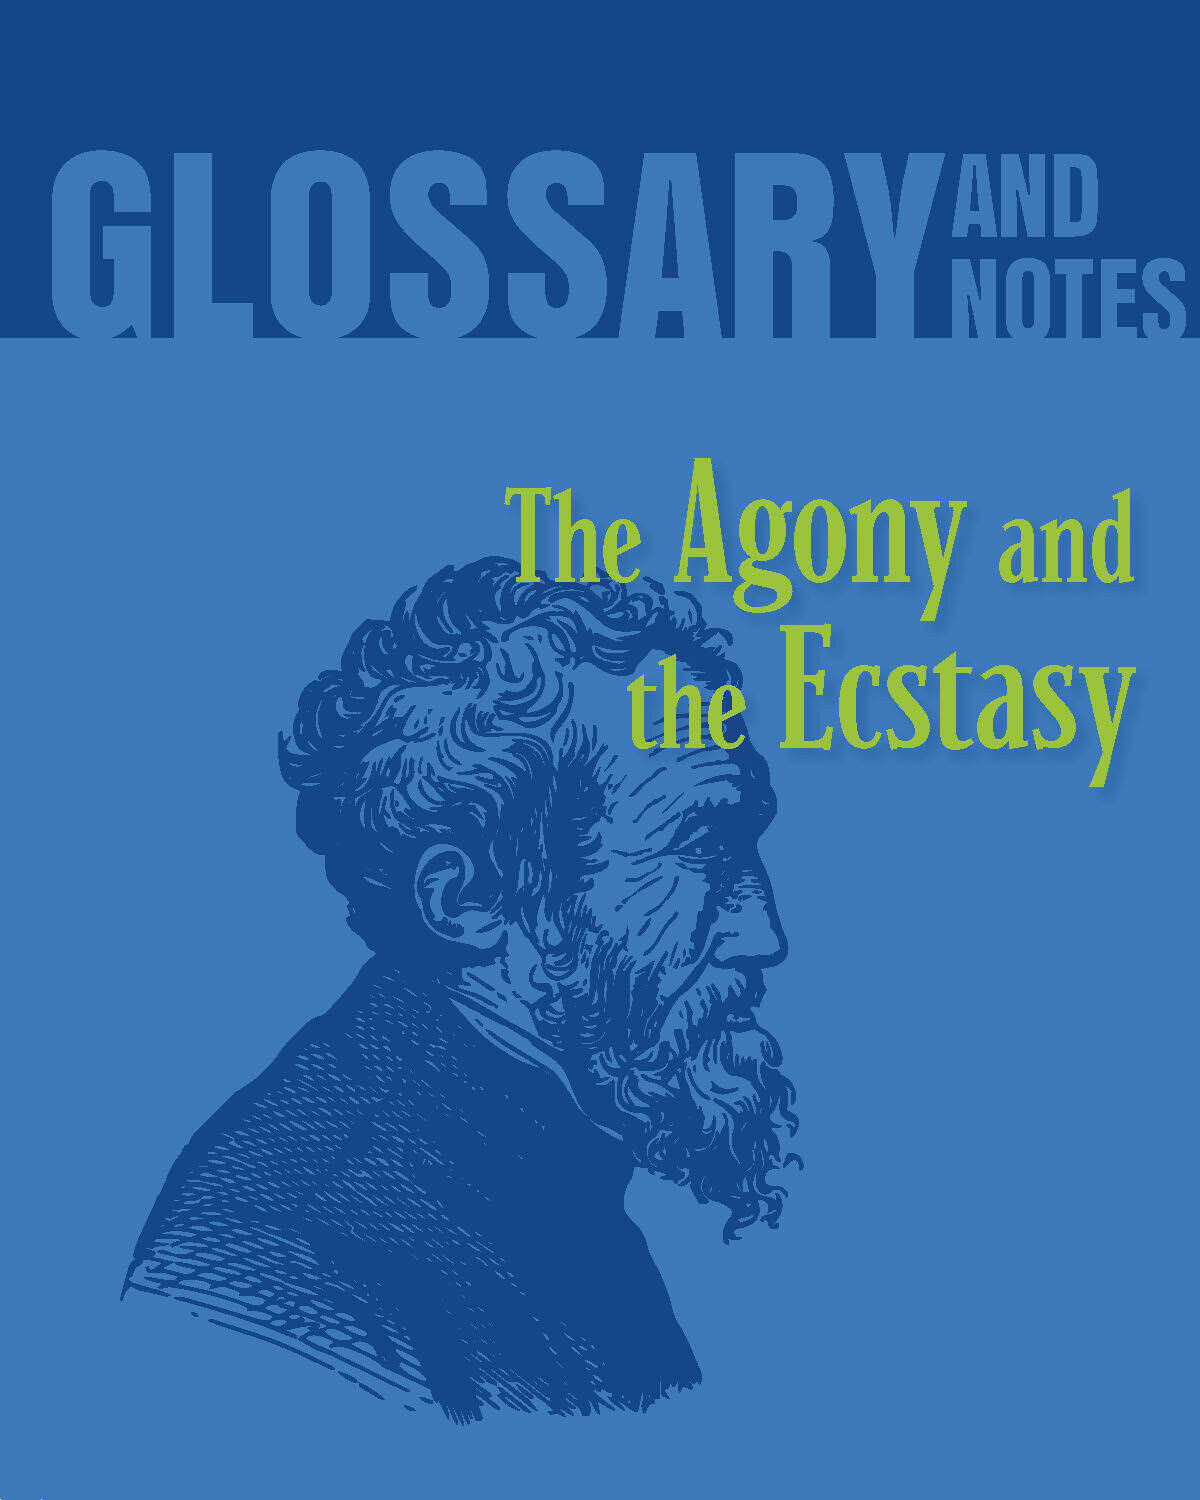 Glossary and Notes - The Agony and the Ecstasy